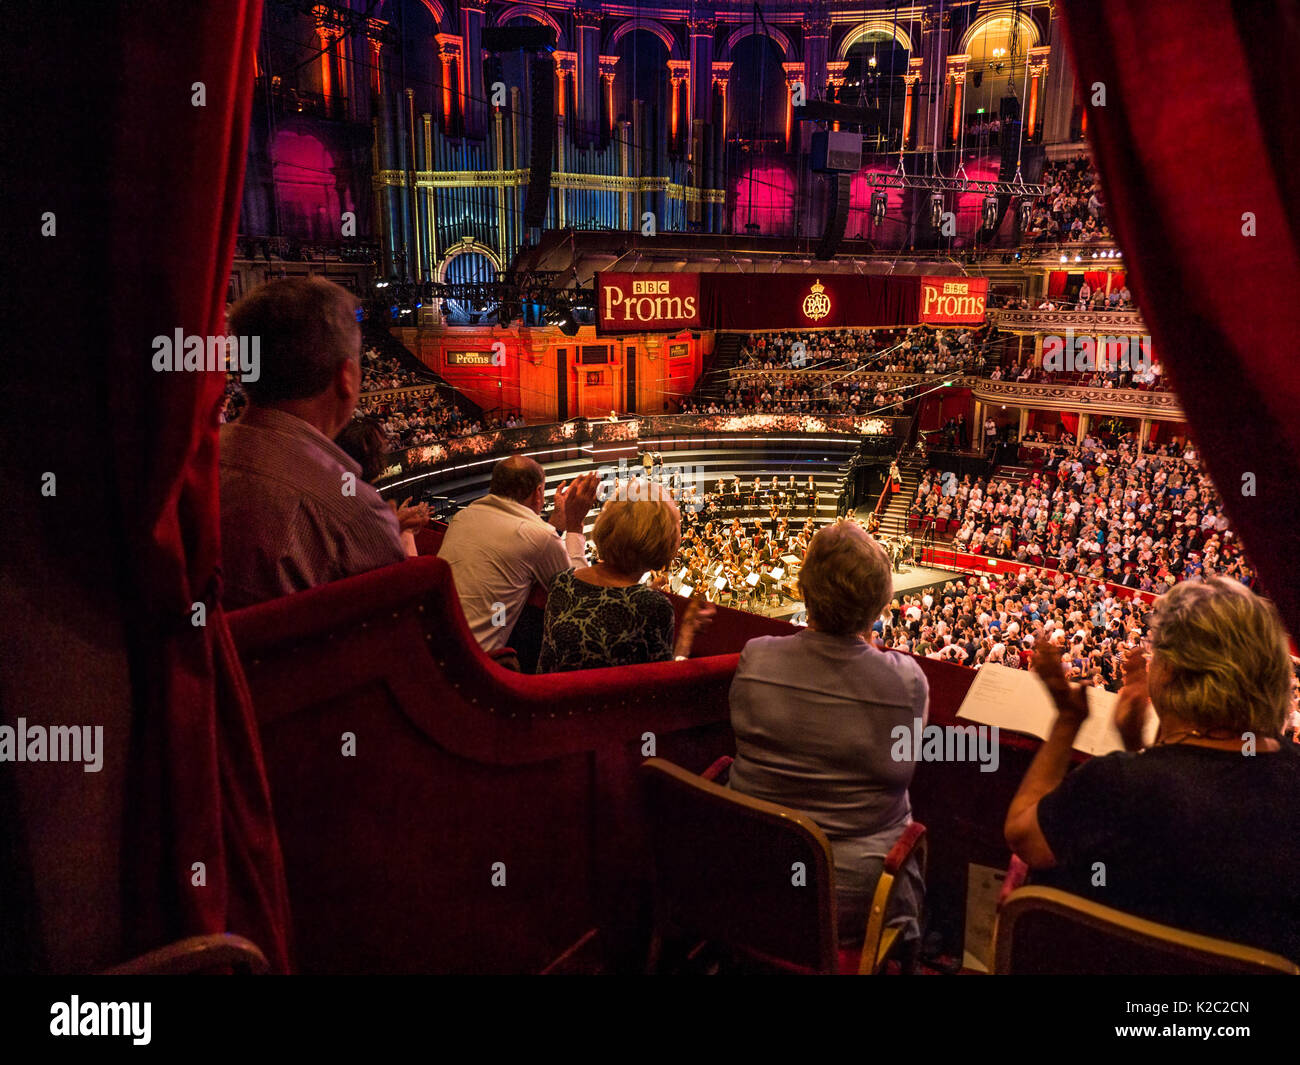 ALBERT HALL INTERIOR BBC PROMS Performance with audience applauding/clapping elevated view from luxury red velour private box to audience and orchestra stage dais behind - Stock Image